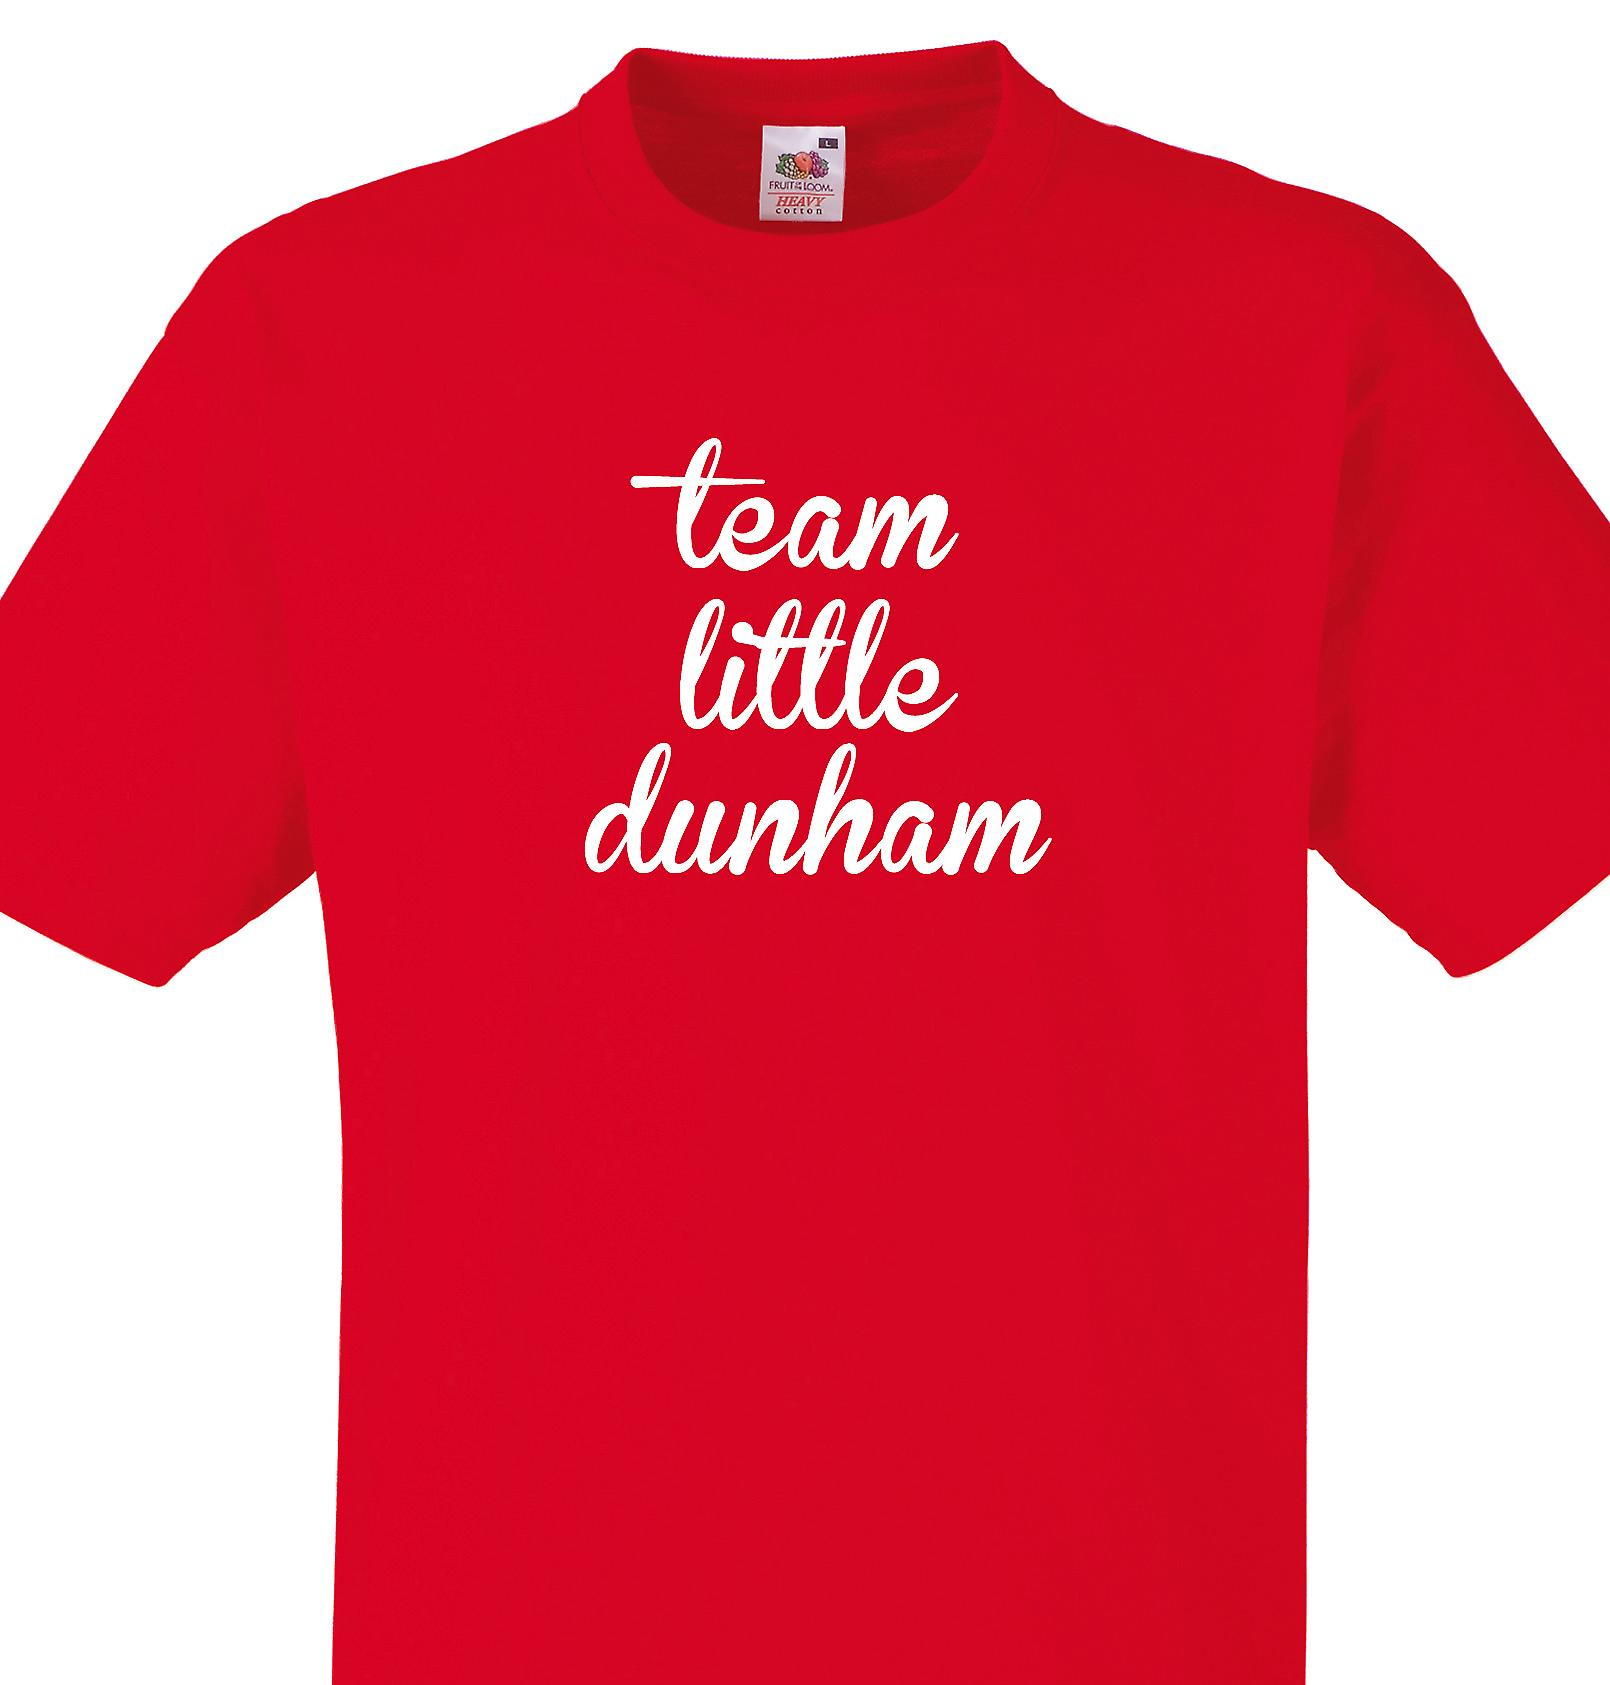 Team Little dunham Red T shirt